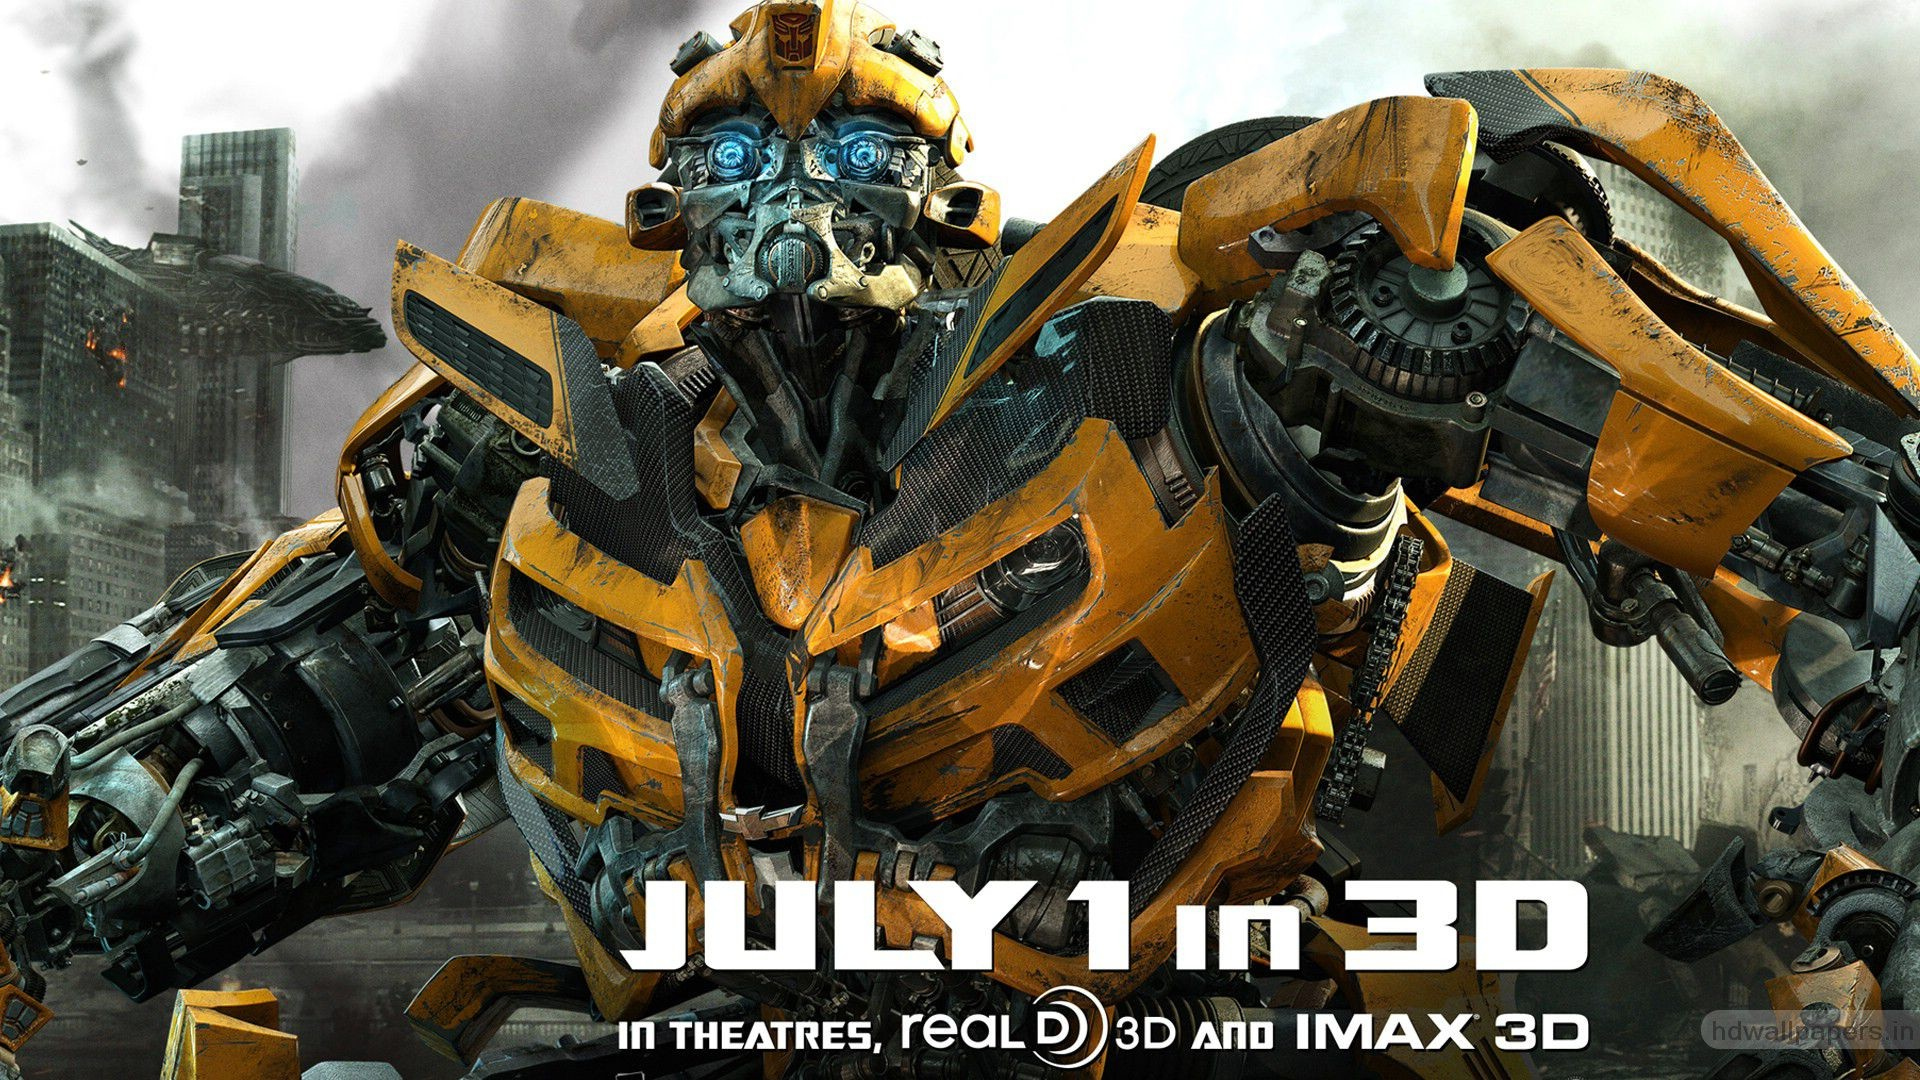 Res: 1920x1080, Bumblebee In New Transformers 3 Movie Poster Fhd Wallpaper